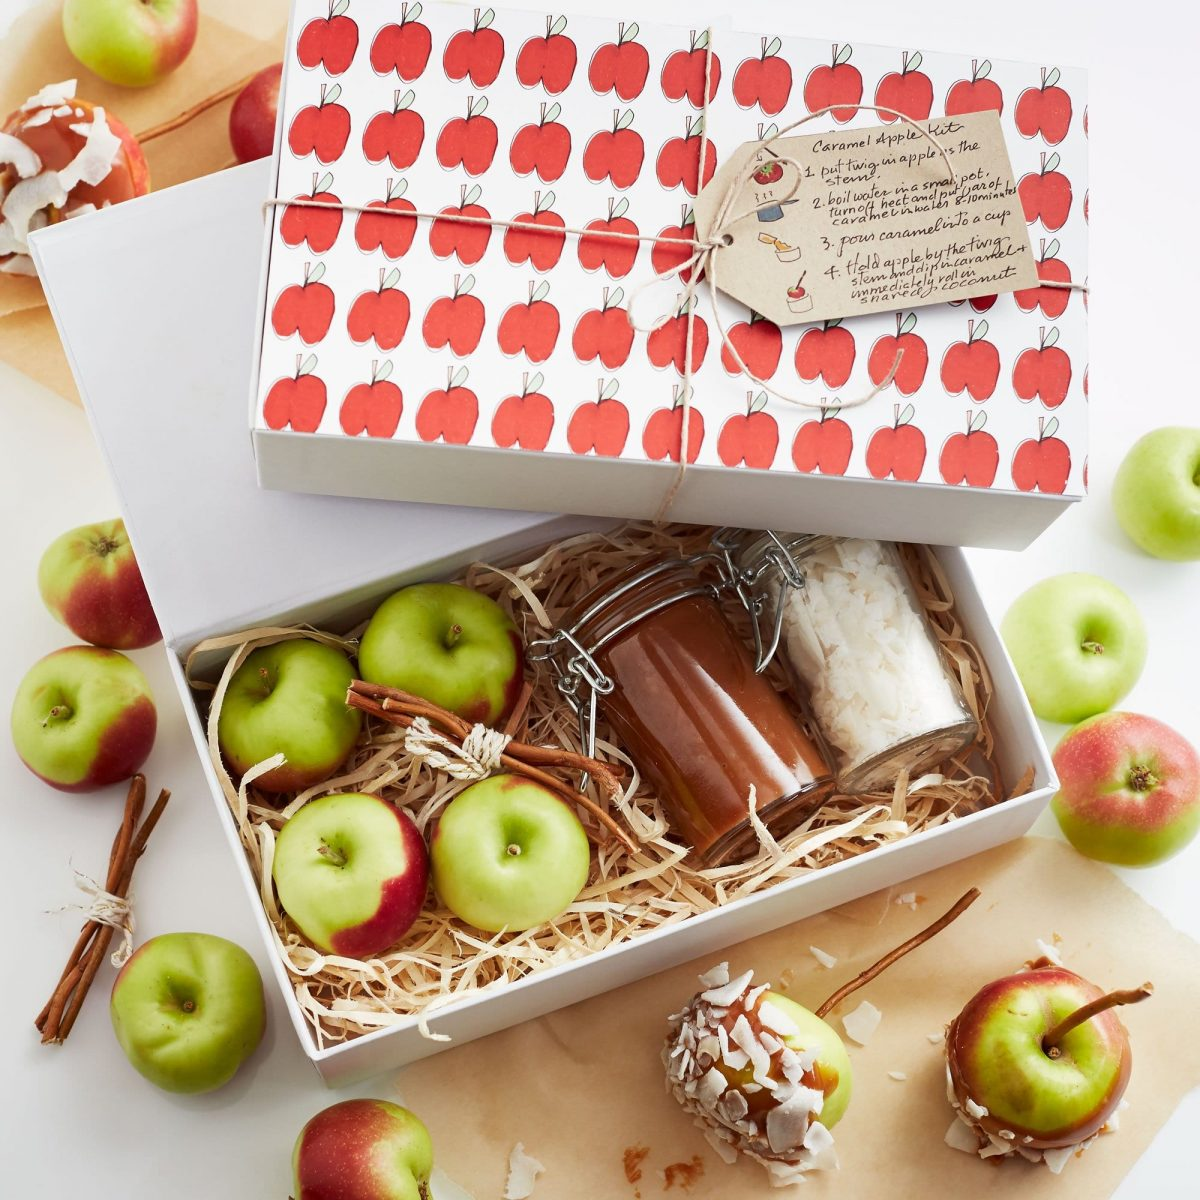 Darcy Miller Designs Caramel Apples to Go, Paper Craft, Healthy Snacks, Apple Craft, Crab Apples, Downloadable Template